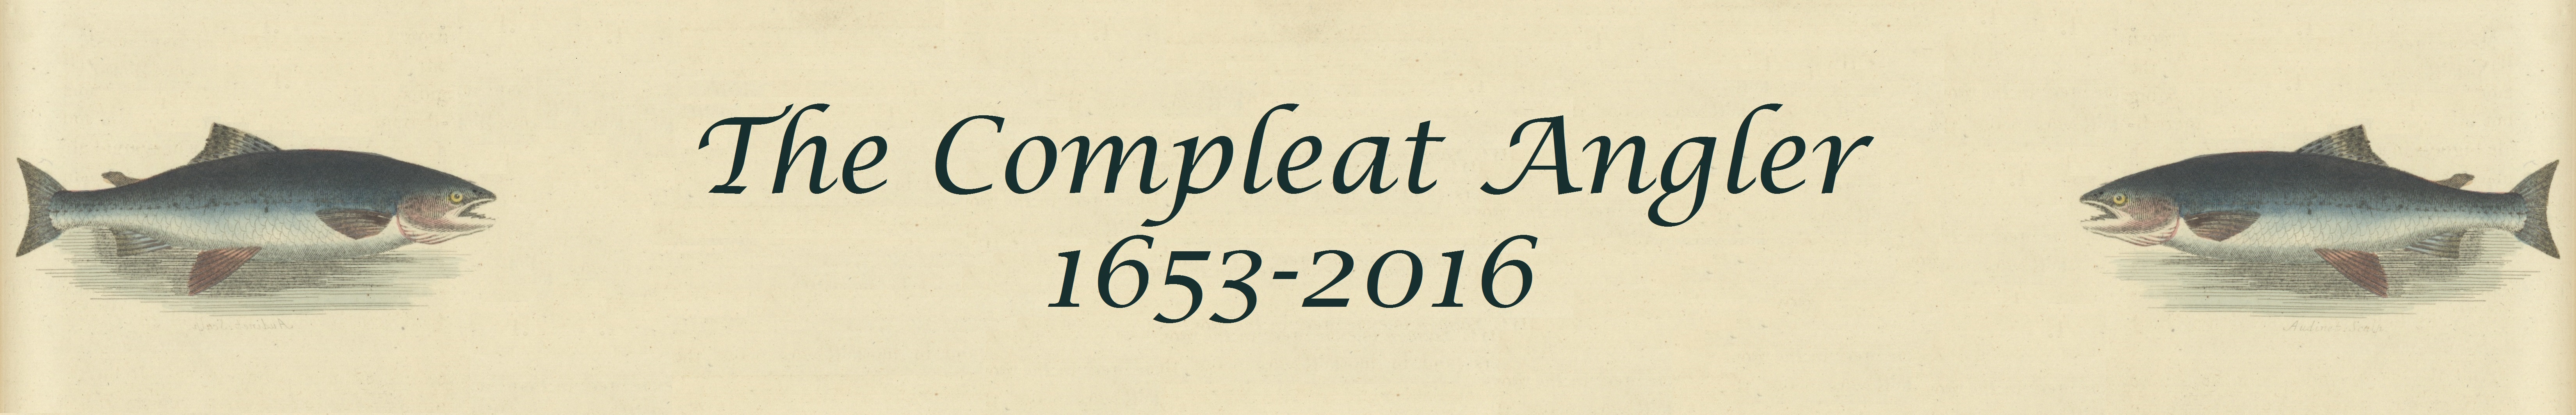 The Compleat Angler Page Banner